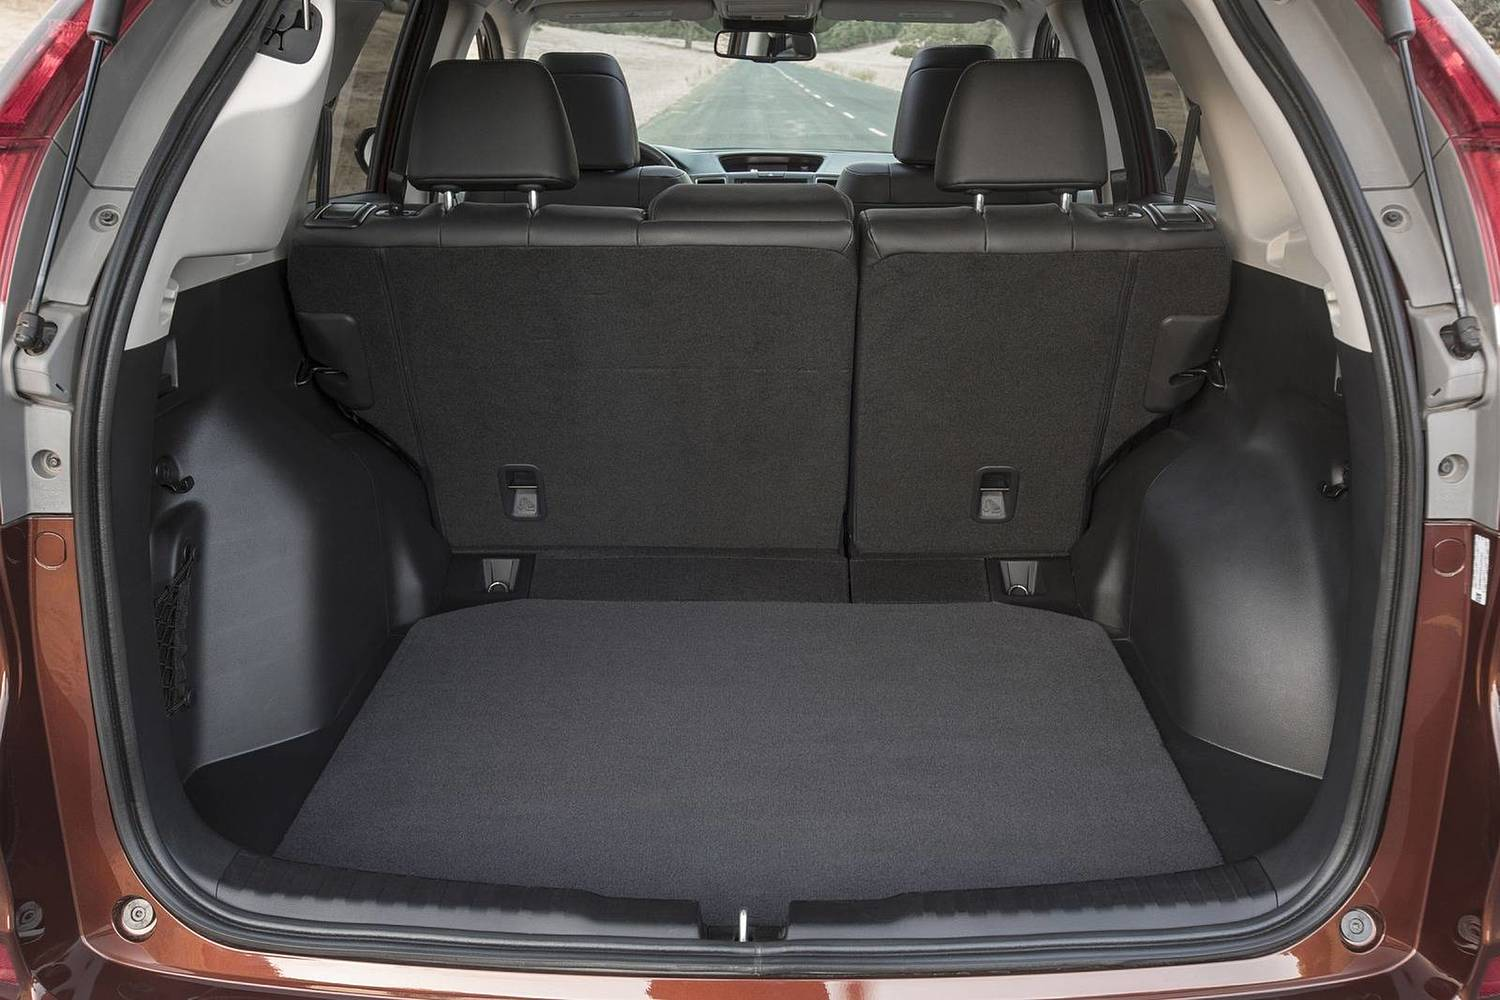 Honda CR-V Touring 4dr SUV Cargo Area (2015 model year shown)